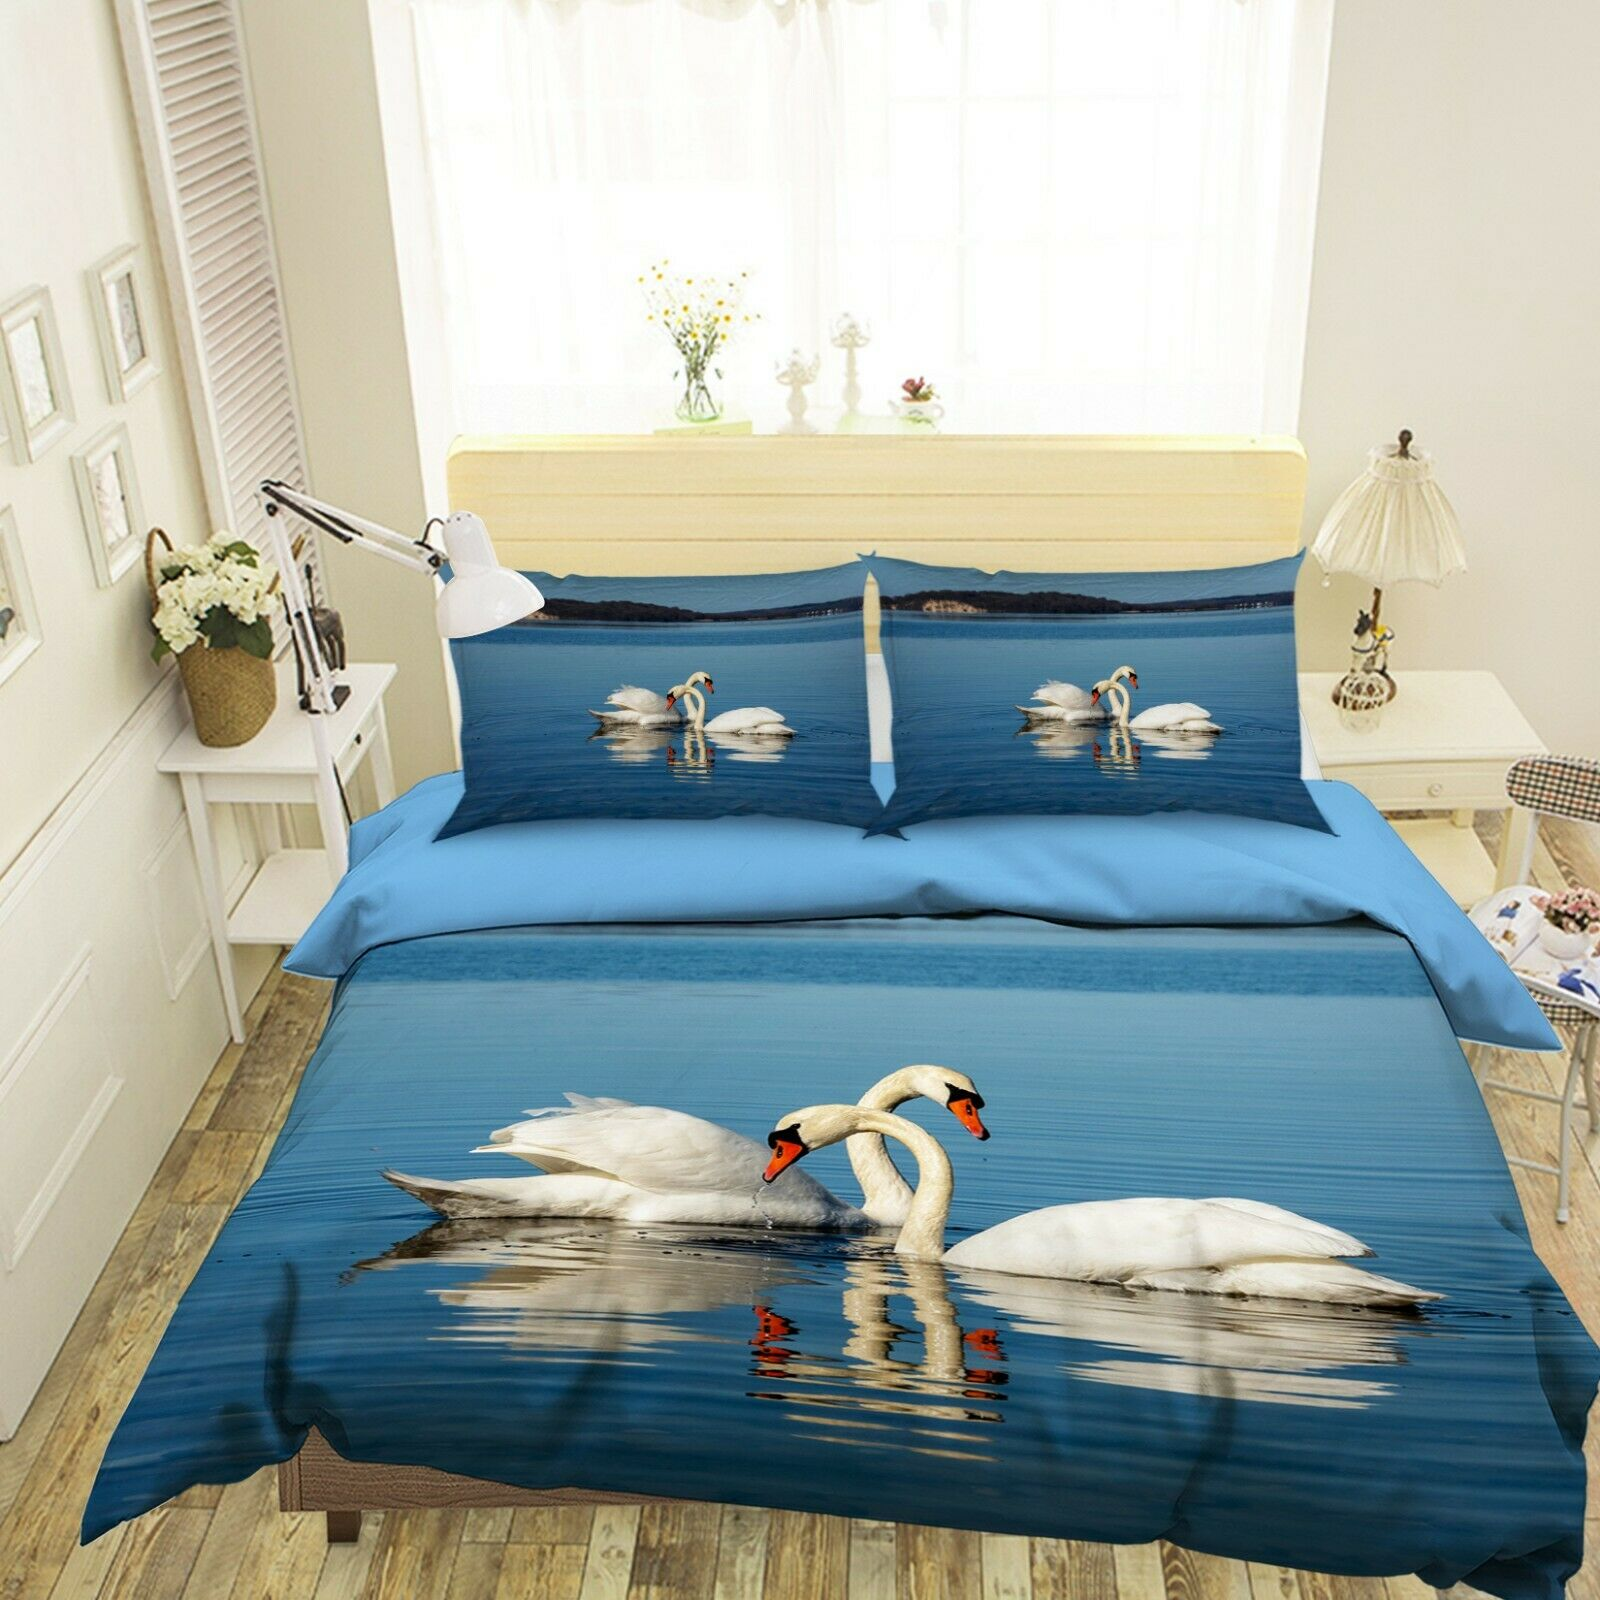 3D Weiß Swans N02 Animal Bed Pillowcases Quilt Duvet Cover Queen King Amy